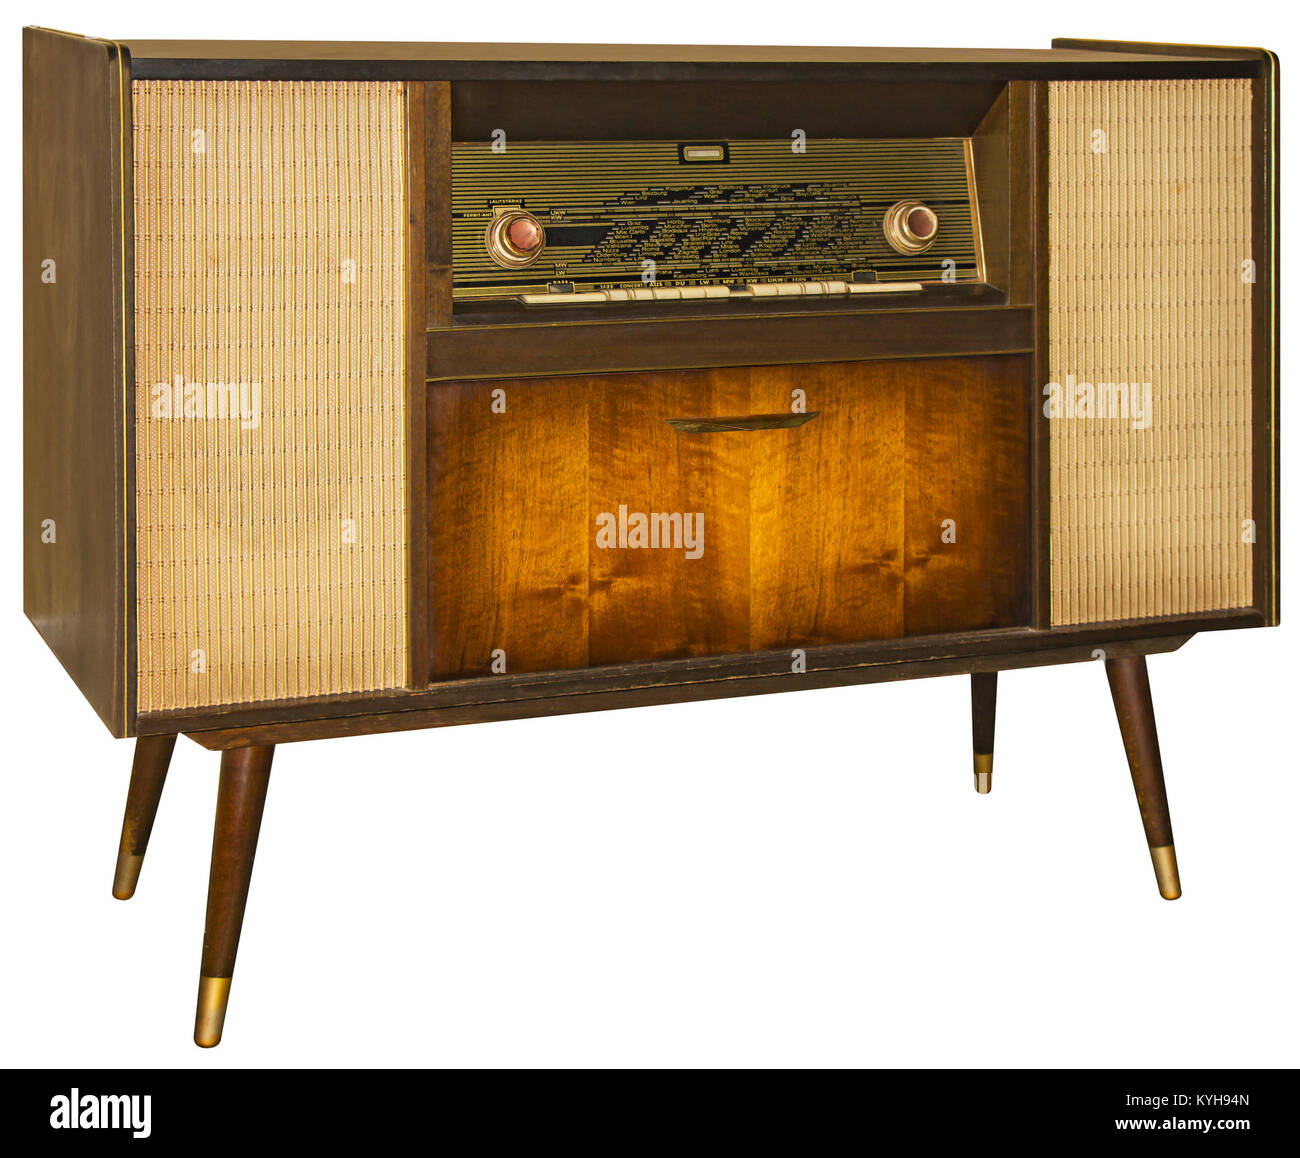 Vintage Wooden Radio Apparatus Isolated with Clipping Path - Stock Image